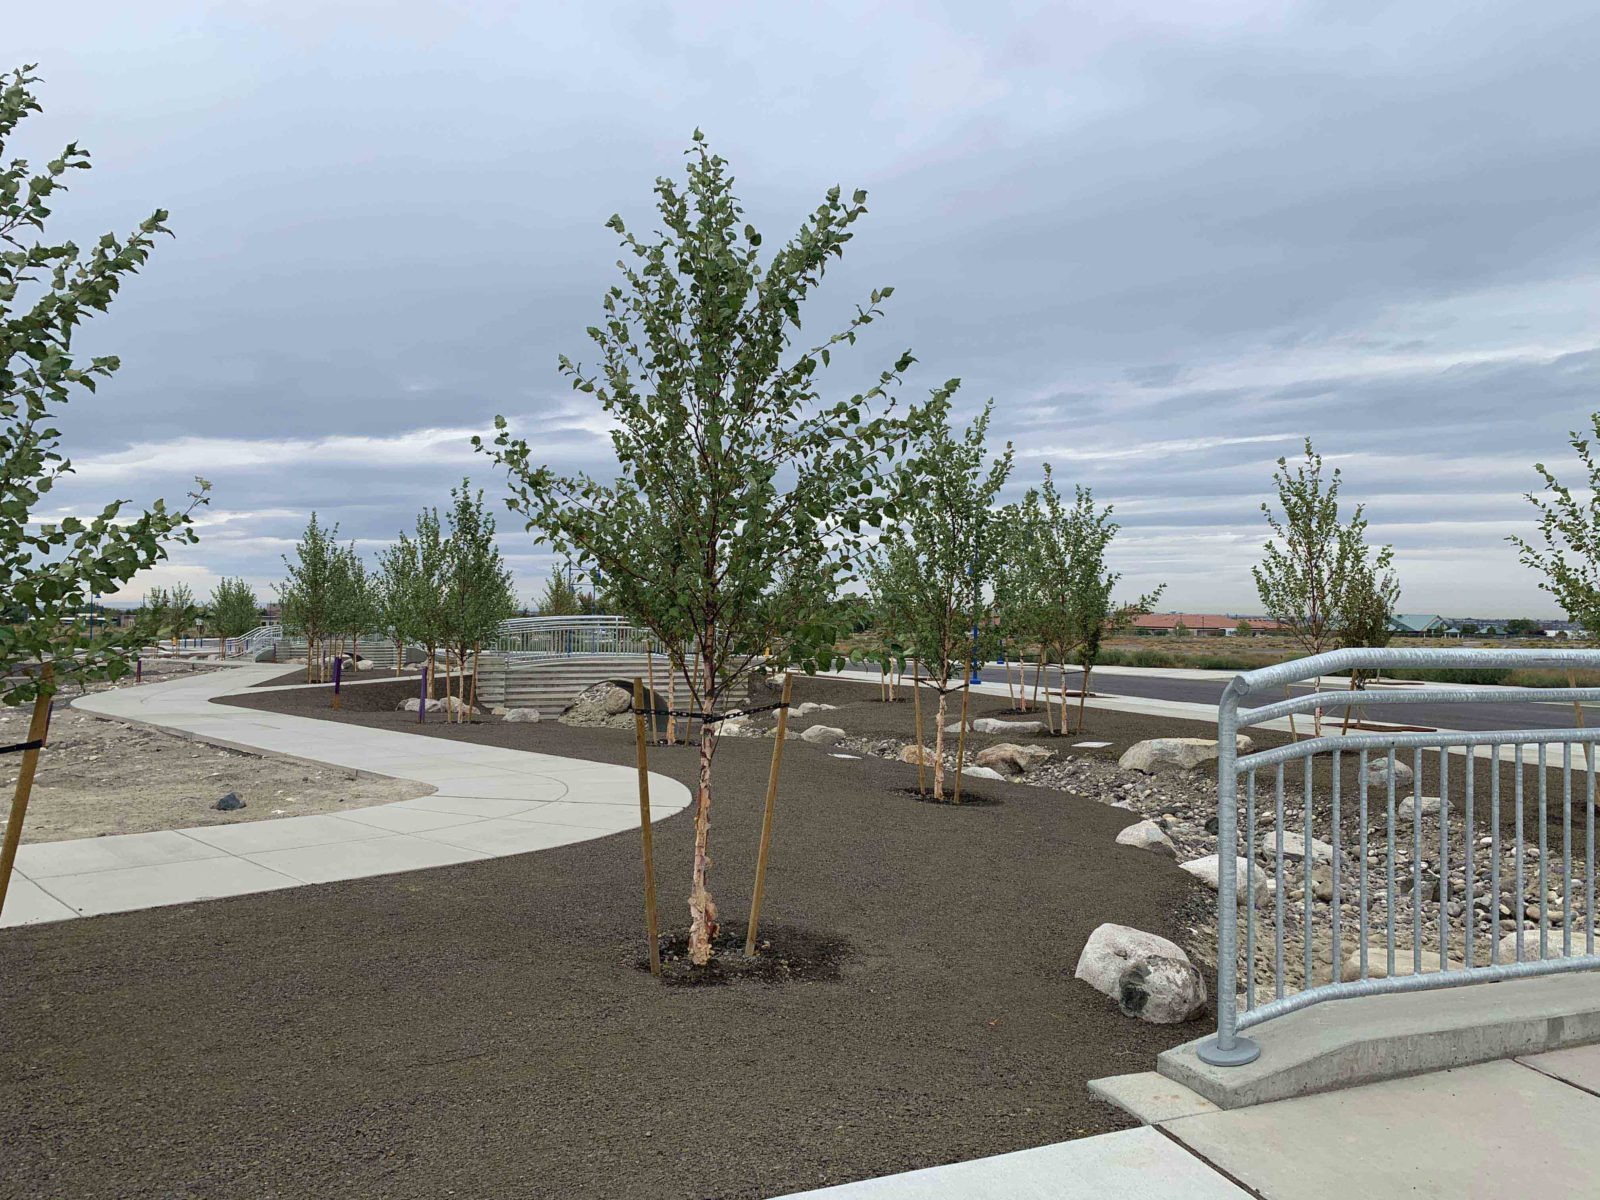 Tree lined walking path at Vista Field - phase one redevelopment.